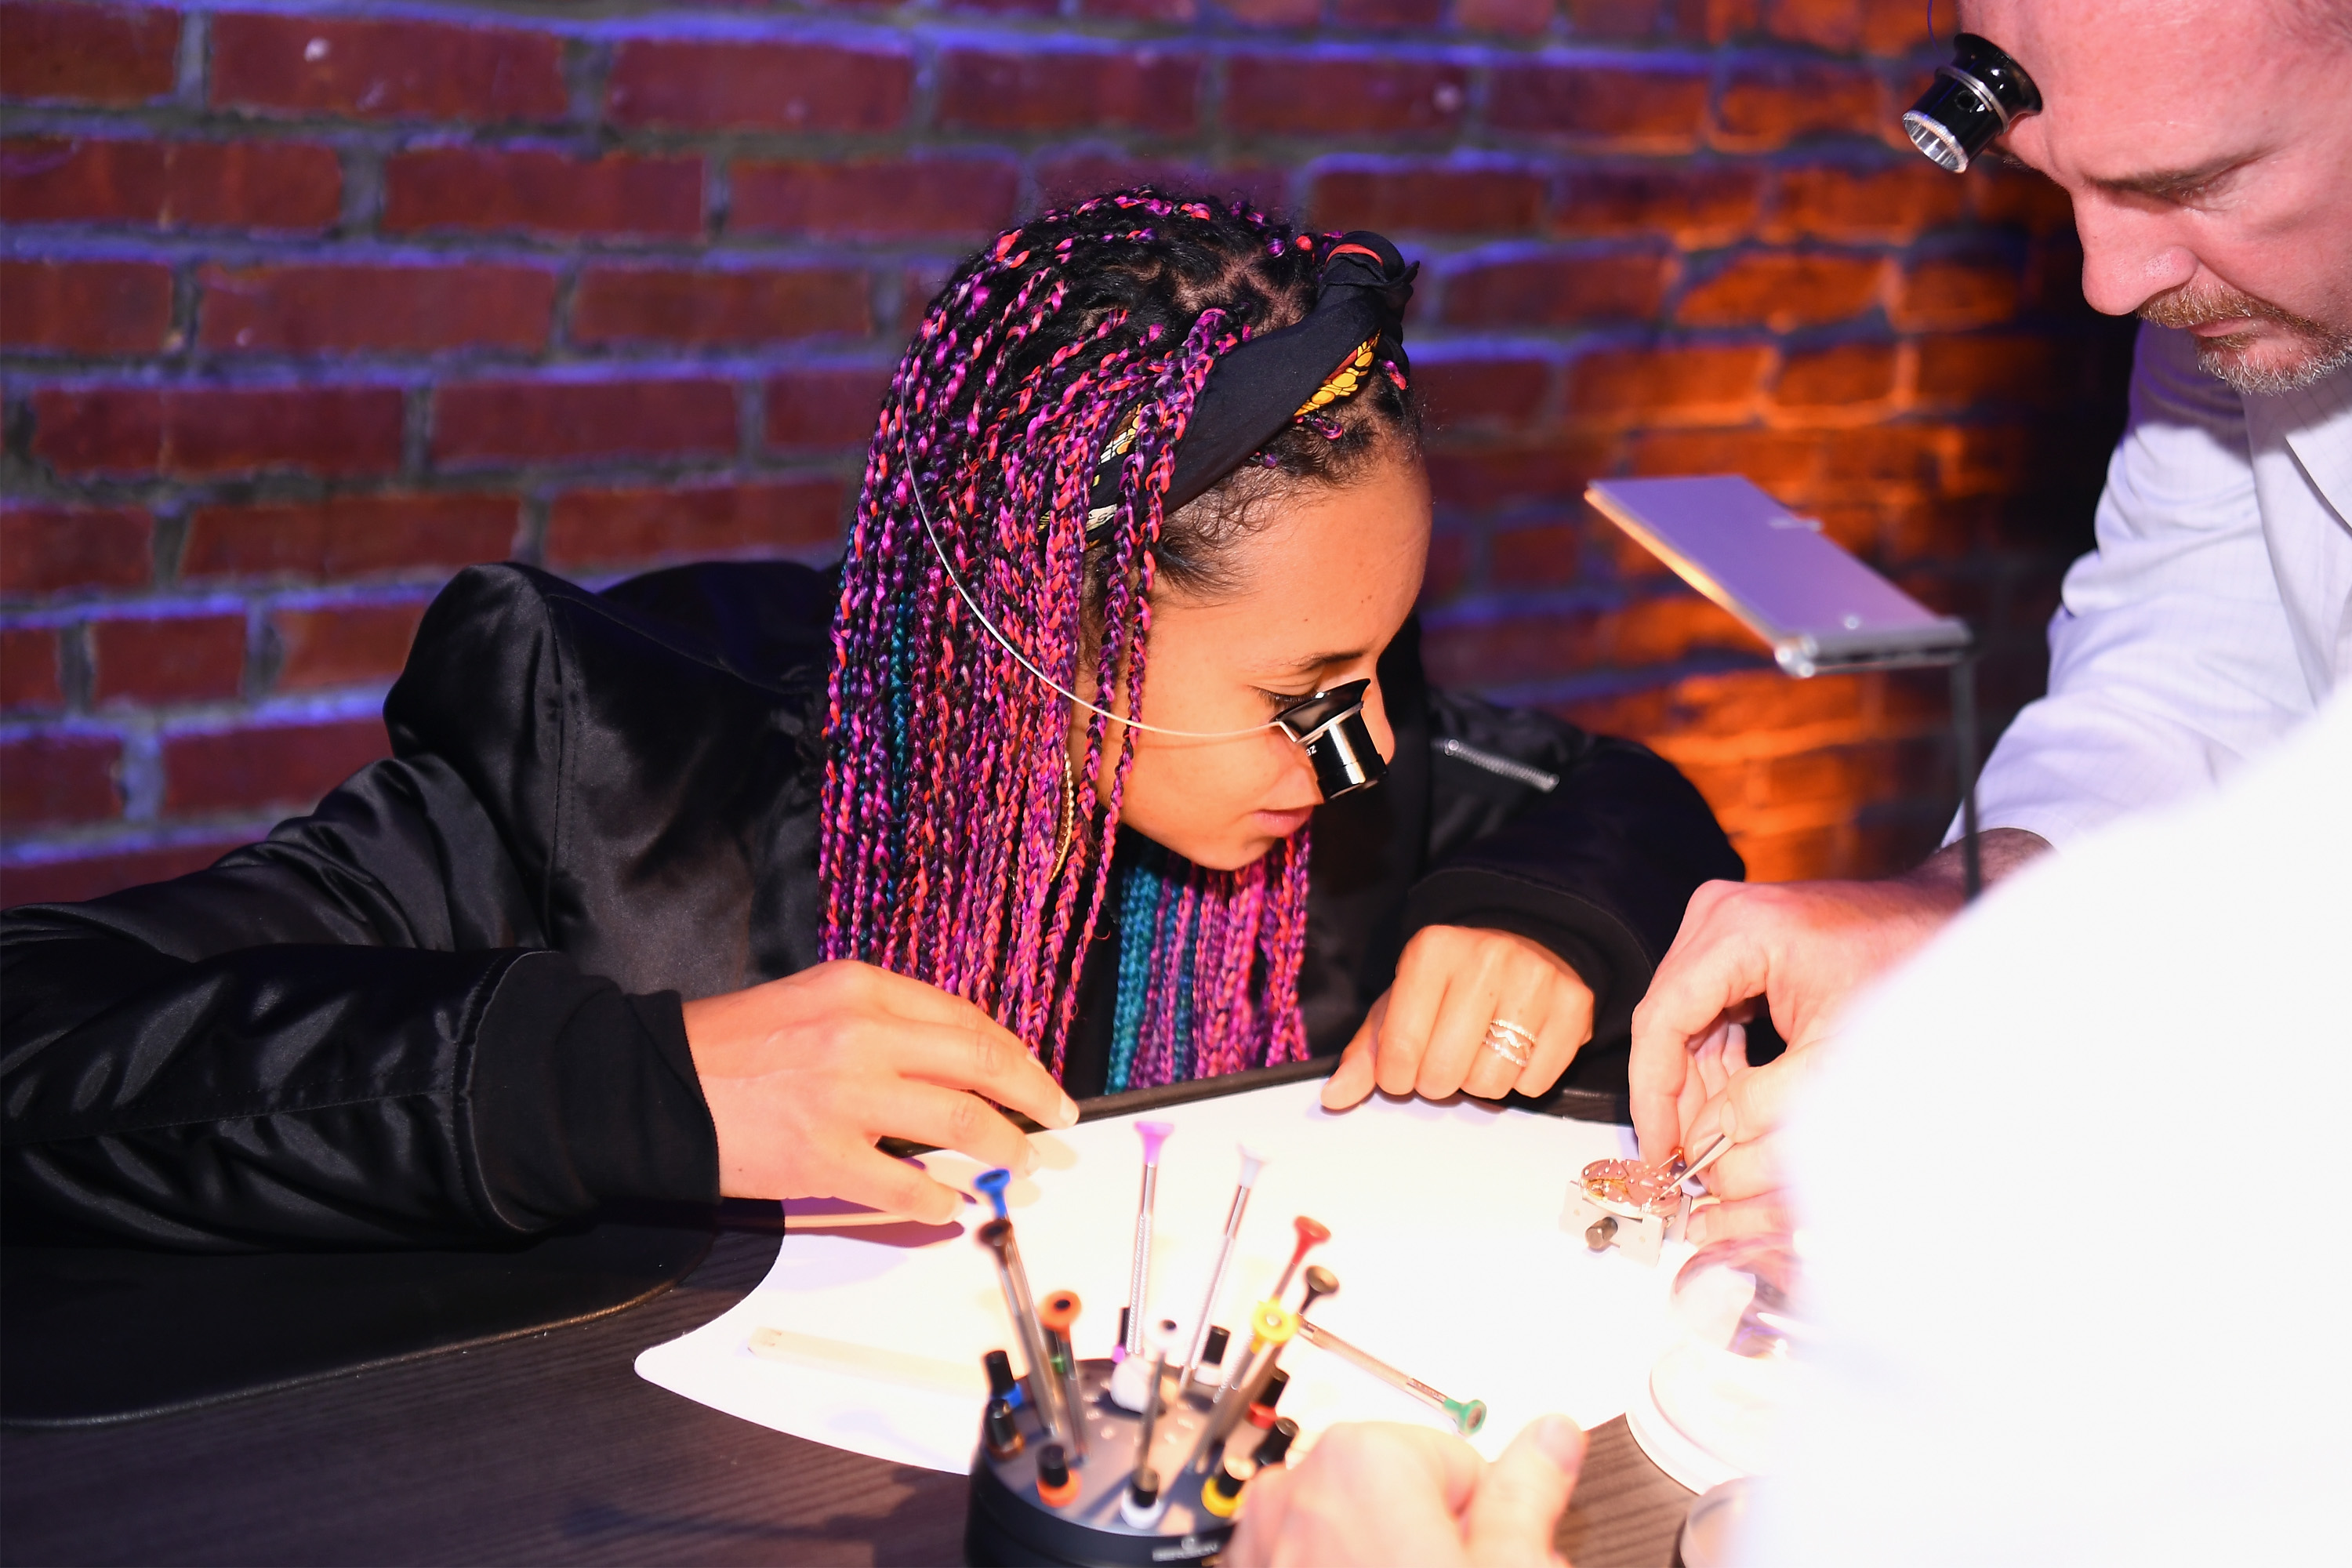 Alicia Keys learns from a watchmaker as Zenith Watches and Swizz Beatz celebrate the launch of The Defy Collection at the Angel Orensanz Center on November 30, 2017 in New York City. (Photo by Dave Kotinsky/Getty Images for Zenith)